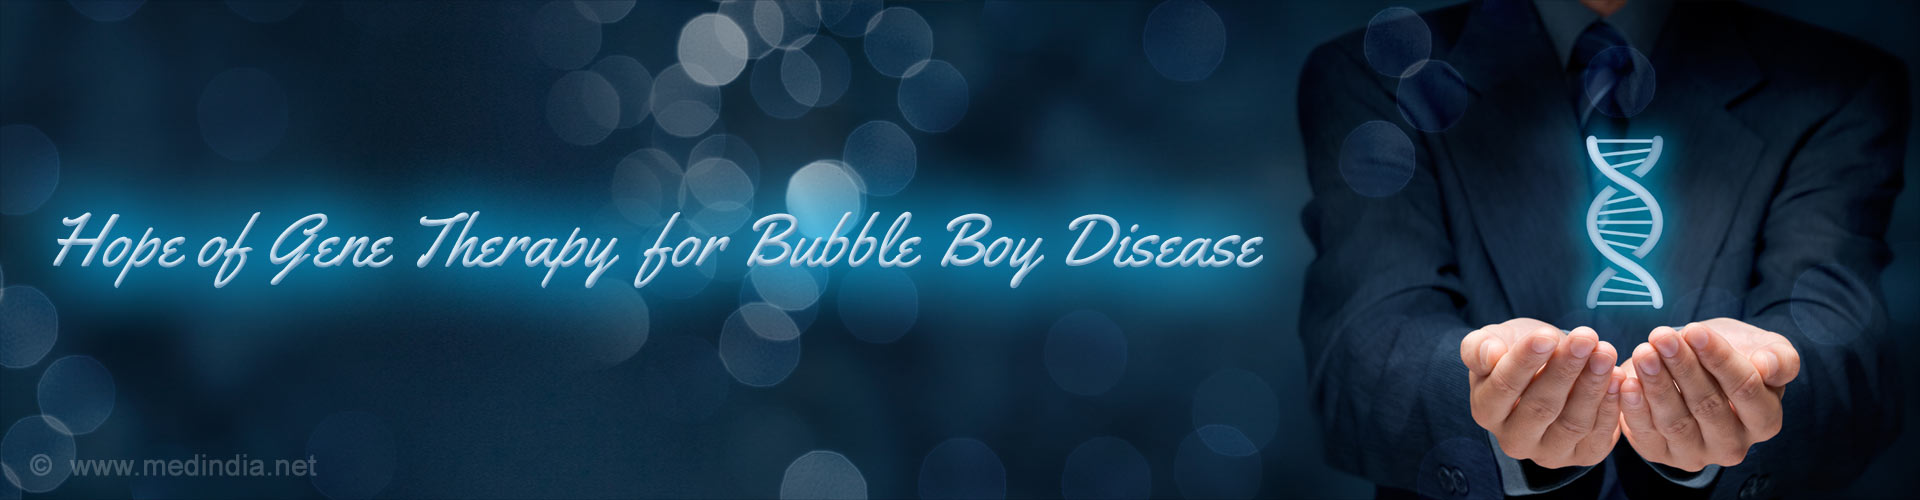 Hope of Gene Therapy for Bubble Boy Disease